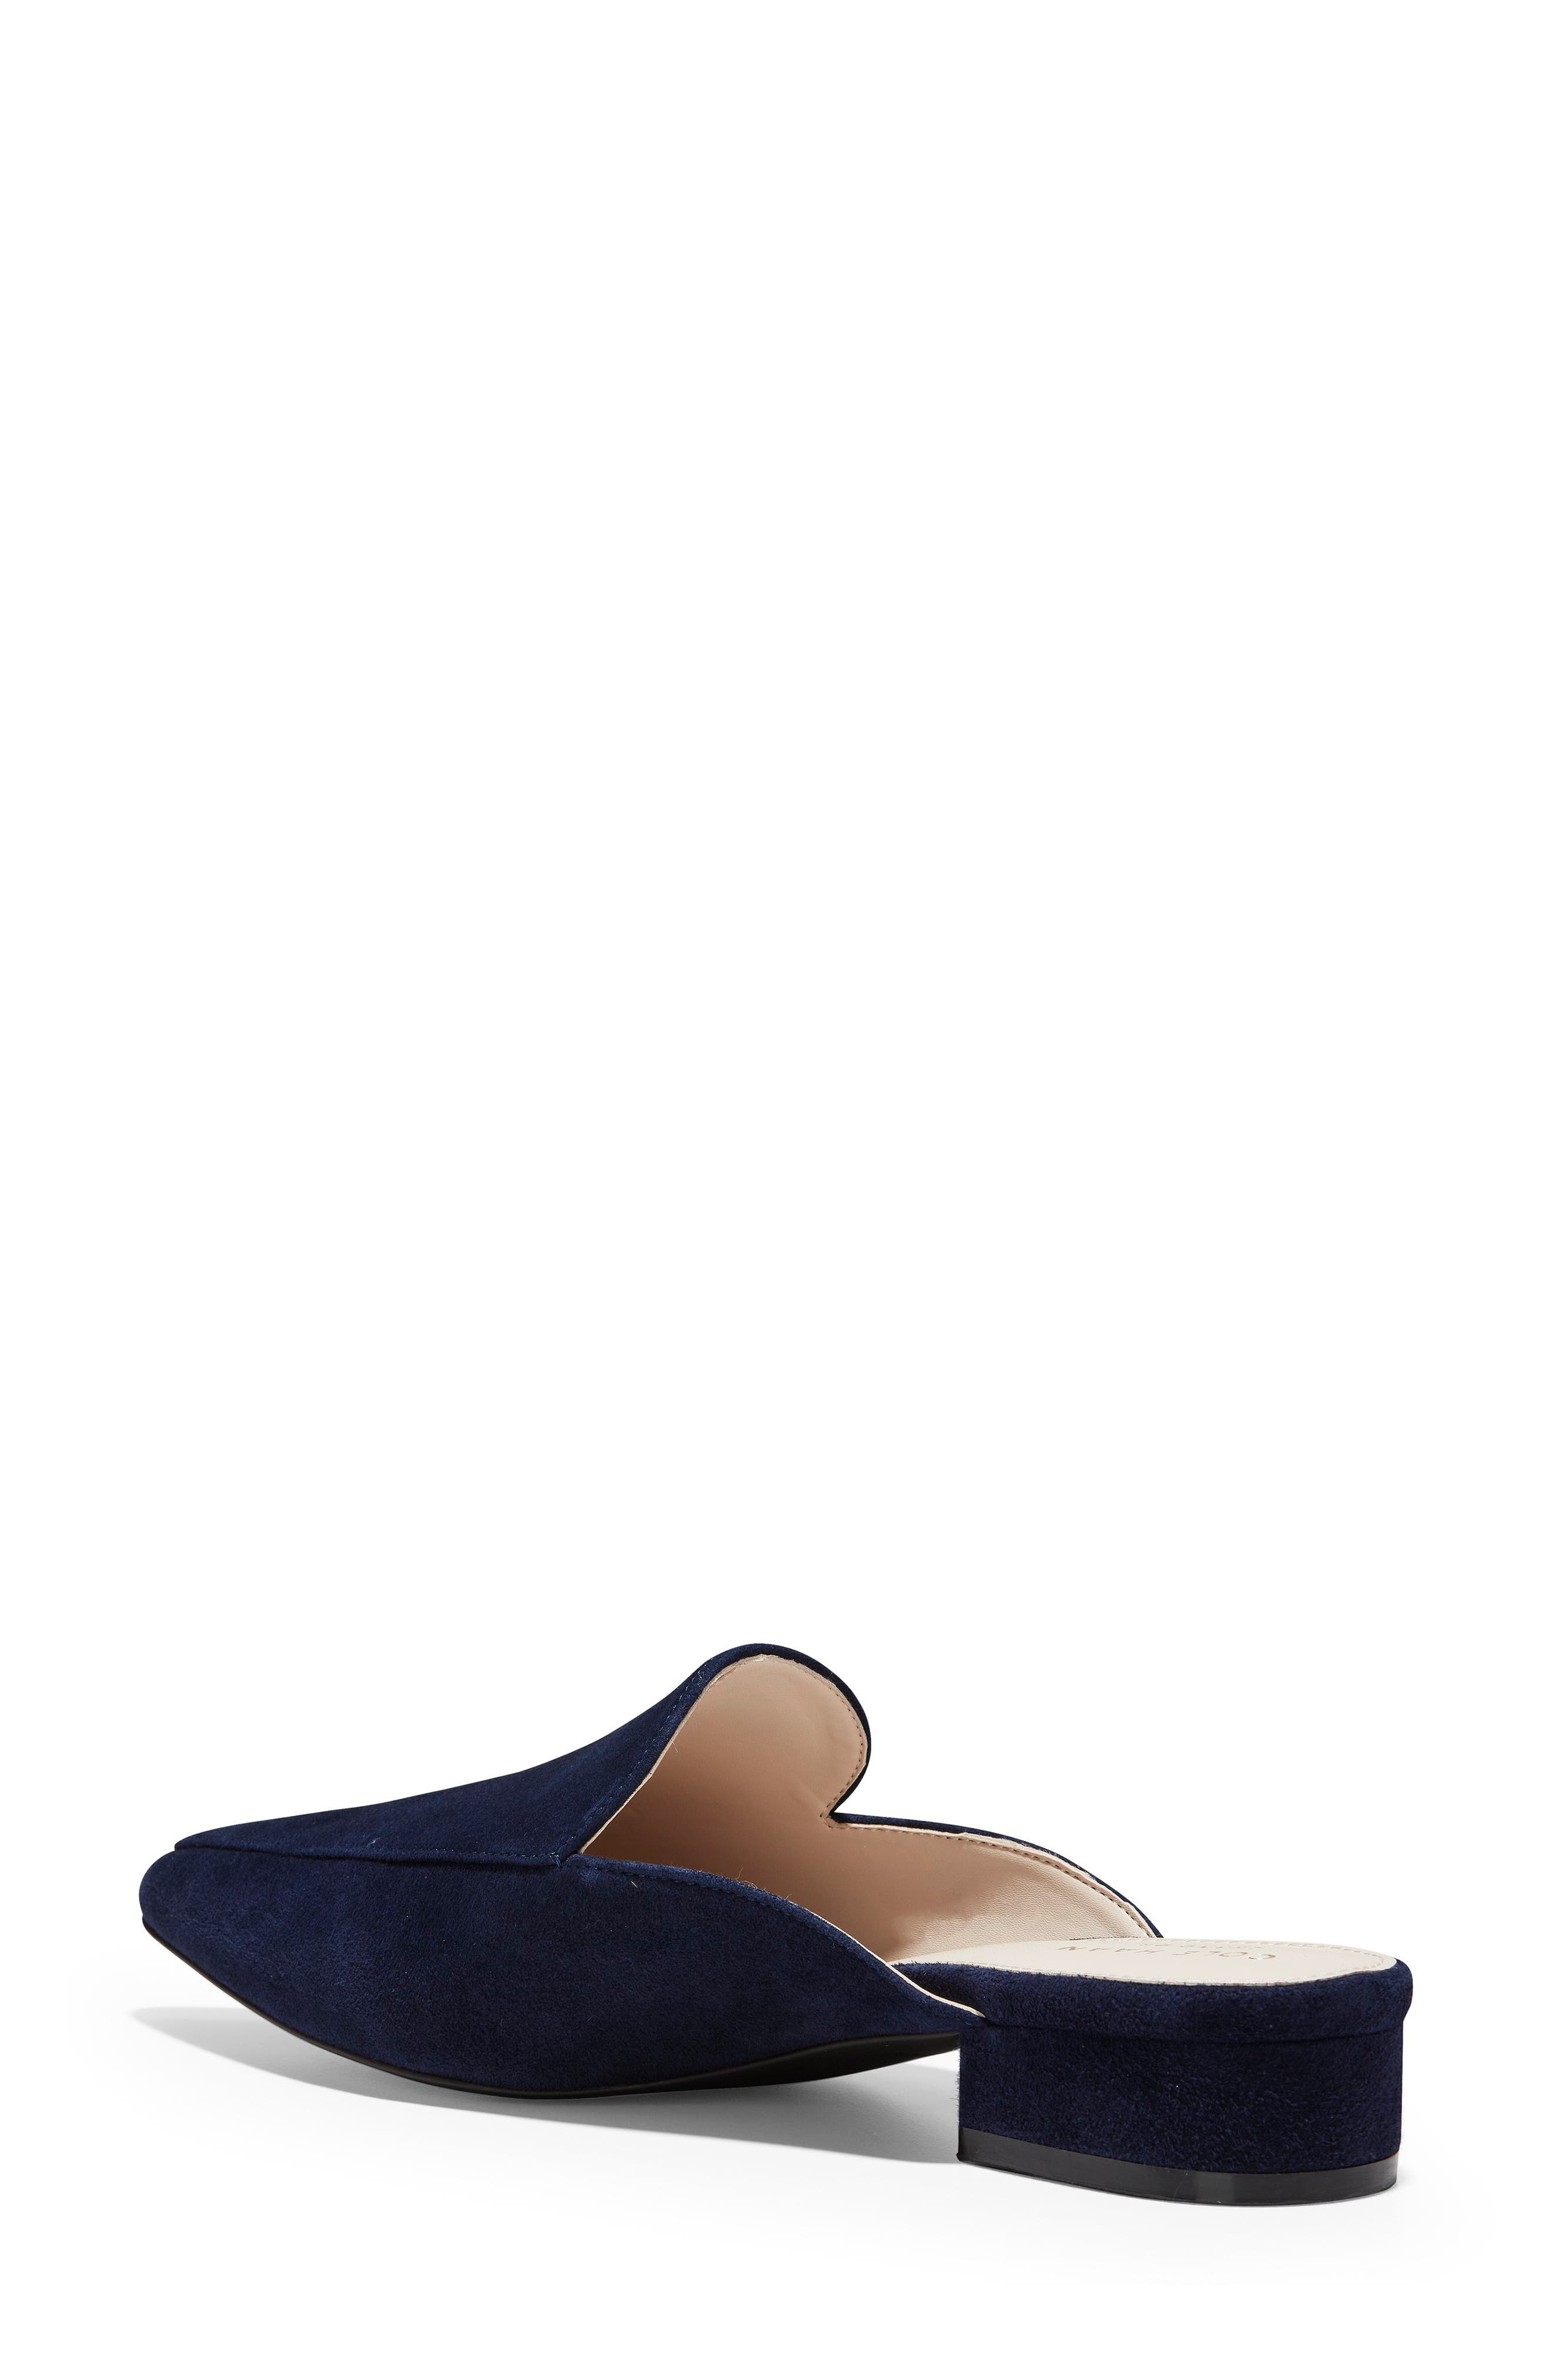 Piper Loafer Mule,                             Alternate thumbnail 2, color,                             Marine Blue Suede